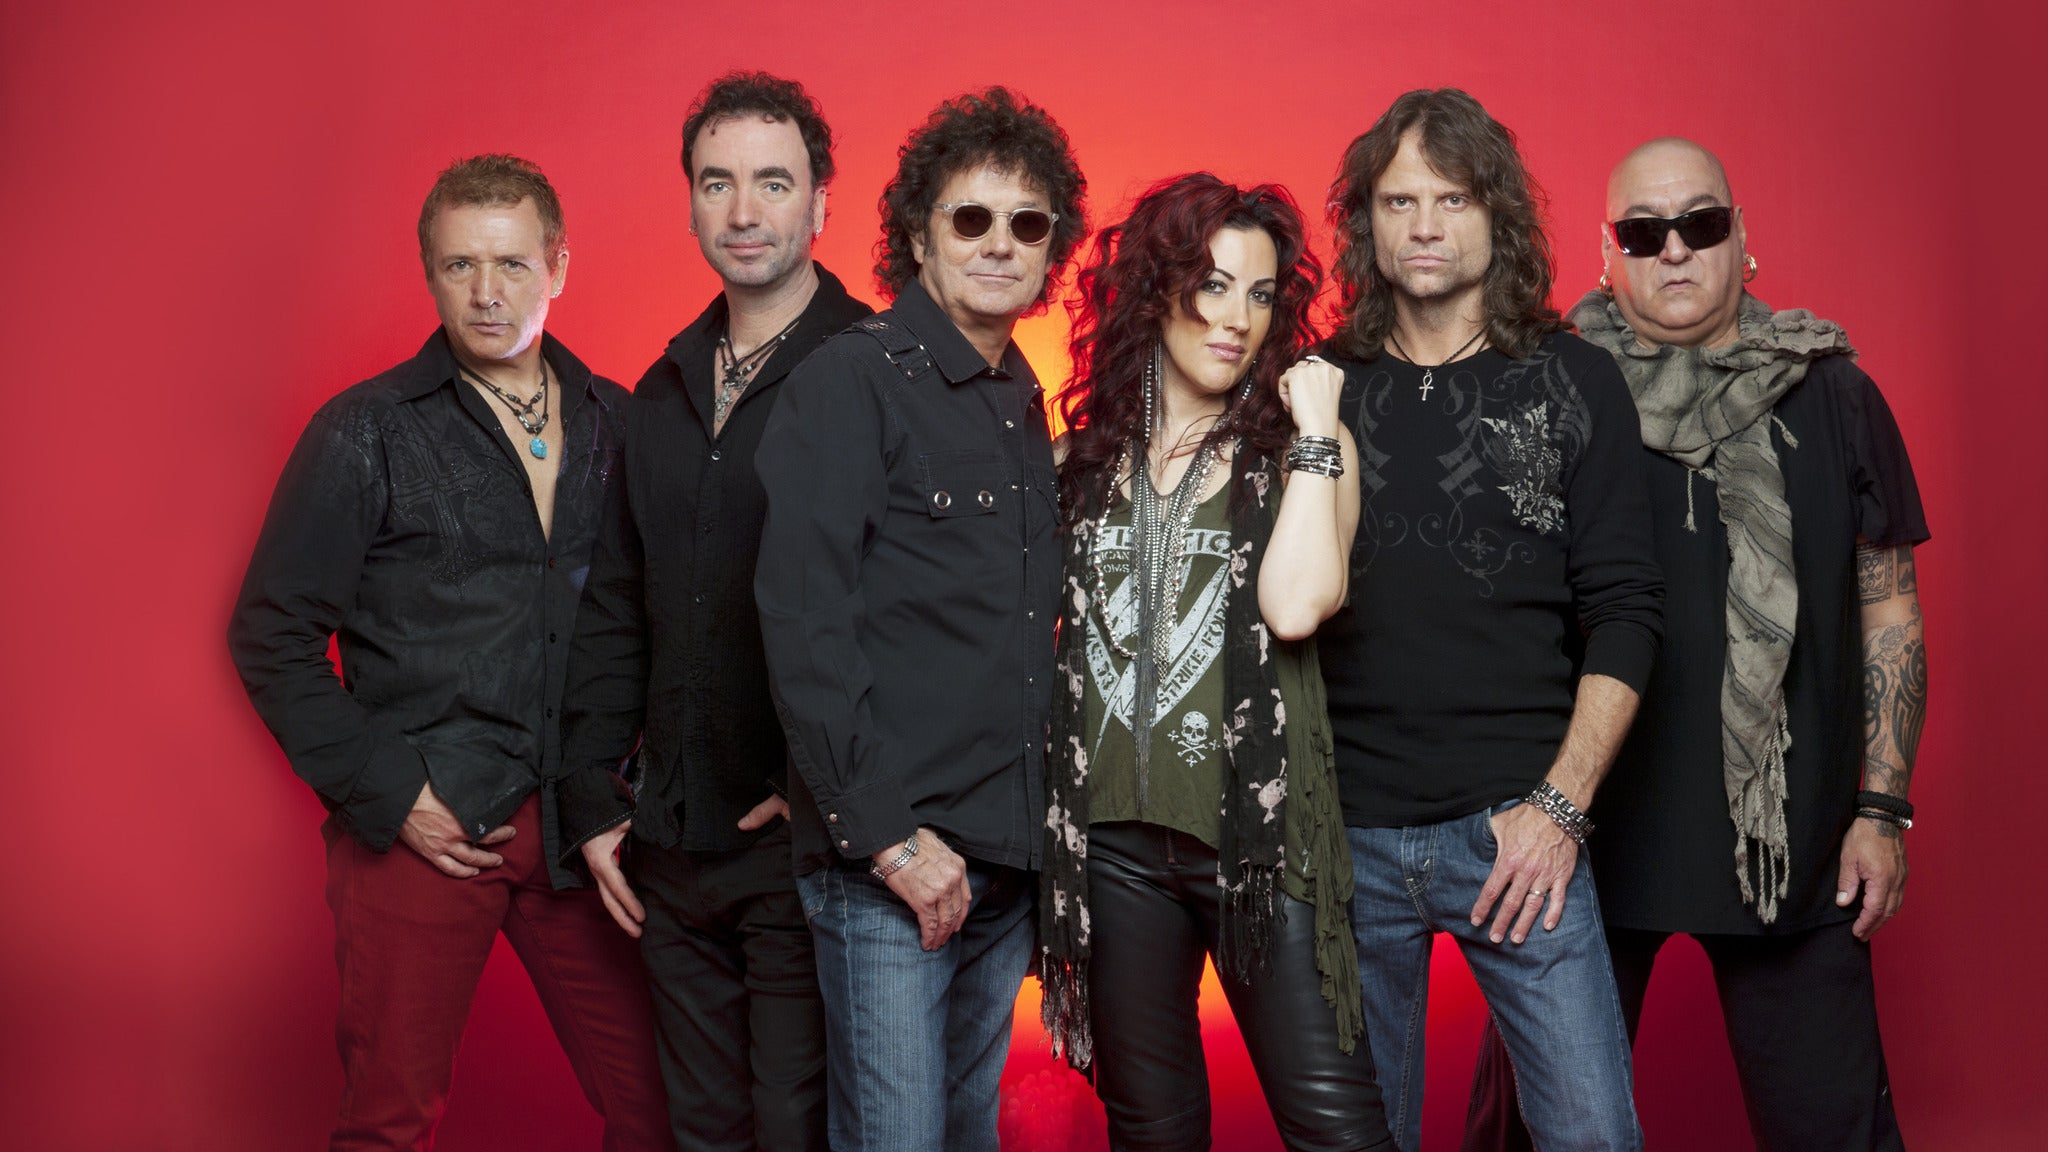 Starship Featuring Mickey Thomas with The Romantics